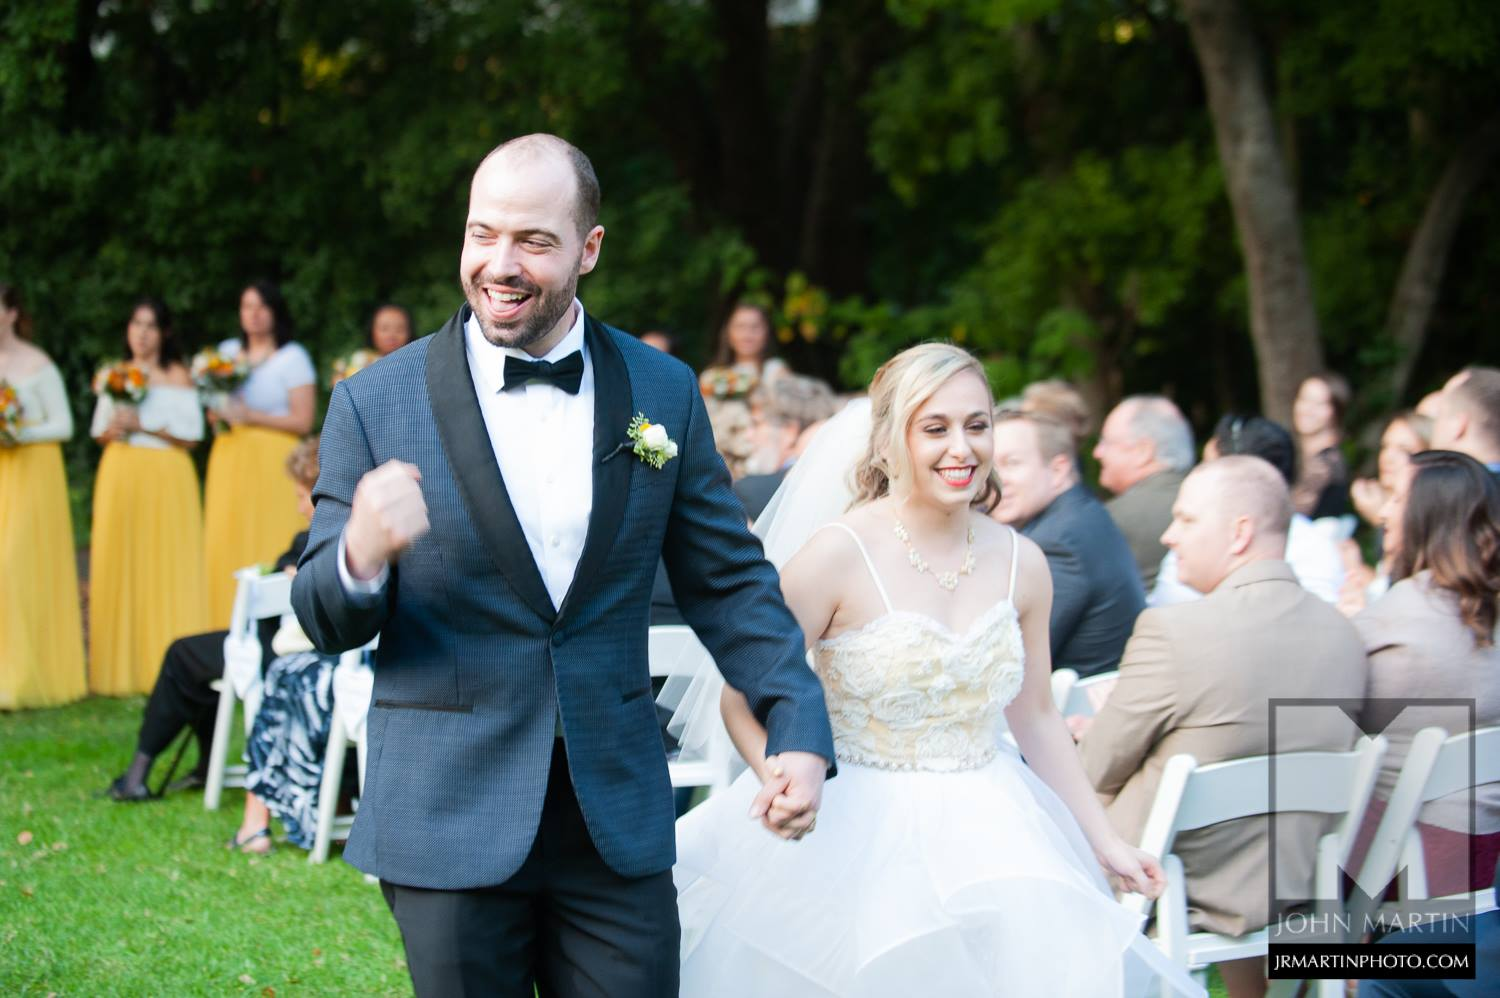 A photo of a couple celebrating their marriage Berkeley Faculty Club